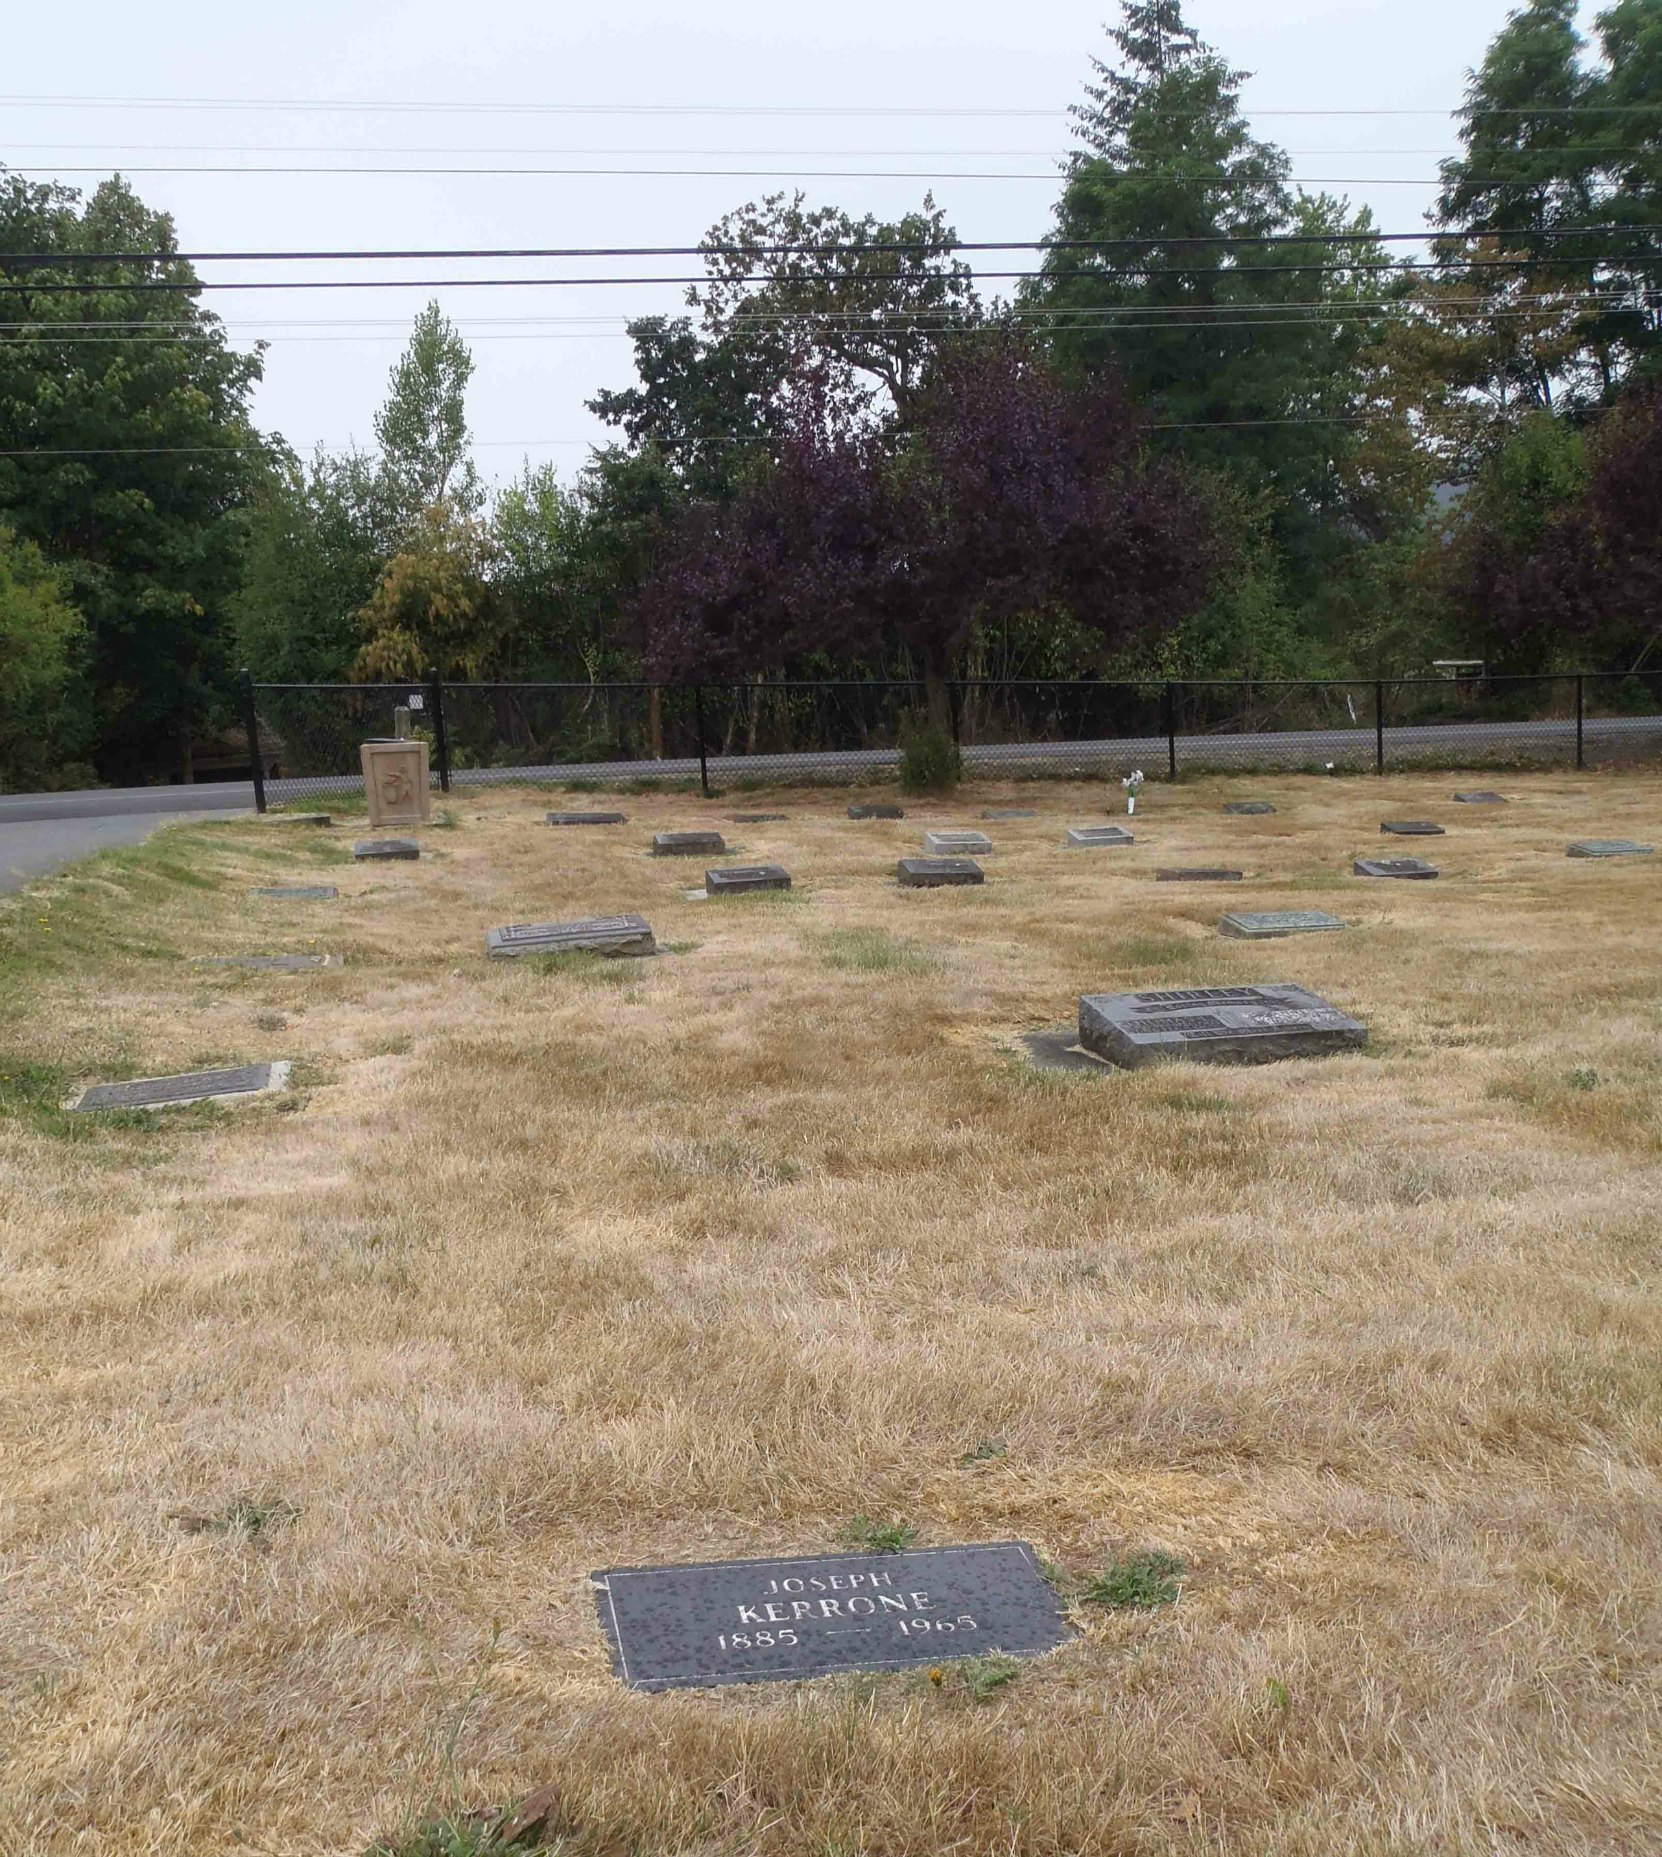 Joseph Kerrone grave, Mountain View Cemetery, North Cowichan (photo by Temple Lodge No. 33 Historian)